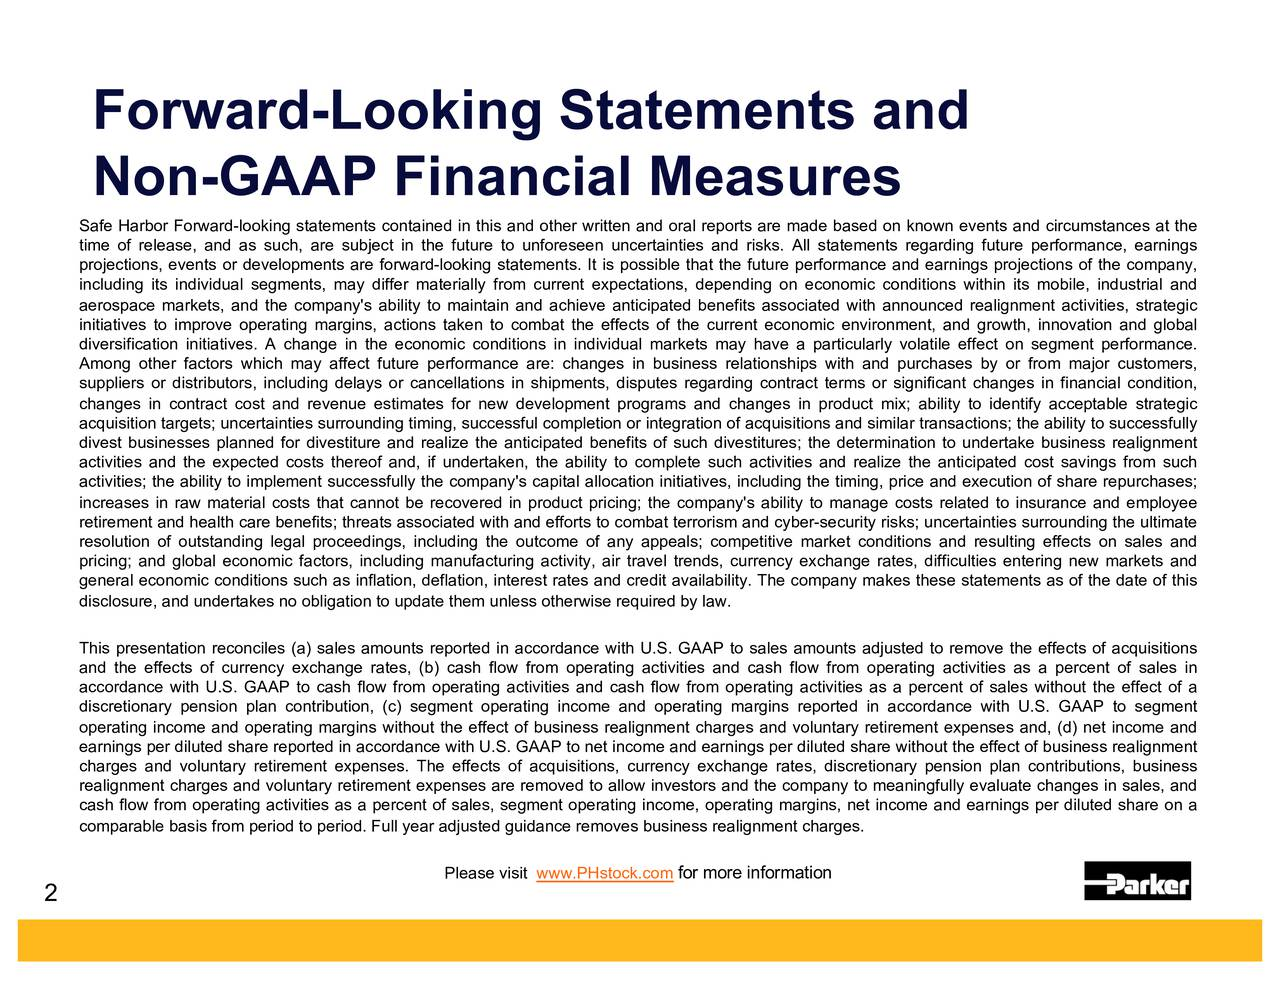 Non-GAAP Financial Measures Safe Harbor Forward-looking statements contained in this and other written and oral reports are made based on known events and circumstances at the time of release, and as such, are subject in the future to unforeseen uncertainties and risks. All statements regarding future performance, earnings projections, events or developments are forward-looking statements. It is possible that the future performance and earnings projections of the company, including its individual segments, may differ materially from current expectations, depending on economic conditions within its mobile, industrial and aerospace markets, and the company's ability to maintain and achieve anticipated benefits associated with announced realignment activities, strategic initiatives to improve operating margins, actions taken to combat the effects of the current economic environment, and growth, innovation and global diversification initiatives. A change in the economic conditions in individual markets may have a particularly volatile effect on segment performance. Among other factors which may affect future performance are: changes in business relationships with and purchases by or from major customers, suppliers or distributors, including delays or cancellations in shipments, disputes regarding contract terms or significant changes in financial condition, changes in contract cost and revenue estimates for new development programs and changes in product mix; ability to identify acceptable strategic acquisition targets; uncertainties surrounding timing, successful completion or integration of acquisitions and similar transactions; the ability to successfully divest businesses planned for divestiture and realize the anticipated benefits of such divestitures; the determination to undertake business realignment activities and the expected costs thereof and, if undertaken, the ability to complete such activities and realize the anticipated cost savings from such activities; the ability to implement successfully the company's capital allocation initiatives, including the timing, price and execution of share repurchases; increases in raw material costs that cannot be recovered in product pricing; the company's ability to manage costs related to insurance and employee retirement and health care benefits; threats associated with and efforts to combat terrorism and cyber-security risks; uncertainties surrounding the ultimate resolution of outstanding legal proceedings, including the outcome of any appeals; competitive market conditions and resulting effects on sales and pricing; and global economic factors, including manufacturing activity, air travel trends, currency exchange rates, difficulties entering new markets and general economic conditions such as inflation, deflation, interest rates and credit availability. The company makes these statements as of the date of this disclosure, and undertakes no obligation to update them unless otherwise required by law. This presentation reconciles (a) sales amounts reported in accordance with U.S. GAAP to sales amounts adjusted to remove the effects of acquisitions and the effects of currency exchange rates, (b) cash flow from operating activities and cash flow from operating activities as a percent of sales in accordance with U.S. GAAP to cash flow from operating activities and cash flow from operating activities as a percent of sales without the effect of a discretionary pension plan contribution, (c) segment operating income and operating margins reported in accordance with U.S. GAAP to segment operating income and operating margins without the effect of business realignment charges and voluntary retirement expenses and, (d) net income and earnings per diluted share reported in accordance with U.S. GAAP to net income and earnings per diluted share without the effect of business realignment charges and voluntary retirement expenses. The effects of acquisitions, currency exchange rates, discretionary pension plan contributions, business realignment charges and voluntary retirement expenses are removed to allow investors and the company to meaningfully evaluate changes in sales, and cash flow from operating activities as a percent of sales, segment operating income, operating margins, net income and earnings per diluted share on a comparable basis from period to period. Full year adjusted guidance removes business realignment charges. Please visit www.PHstock.cofor more information 2